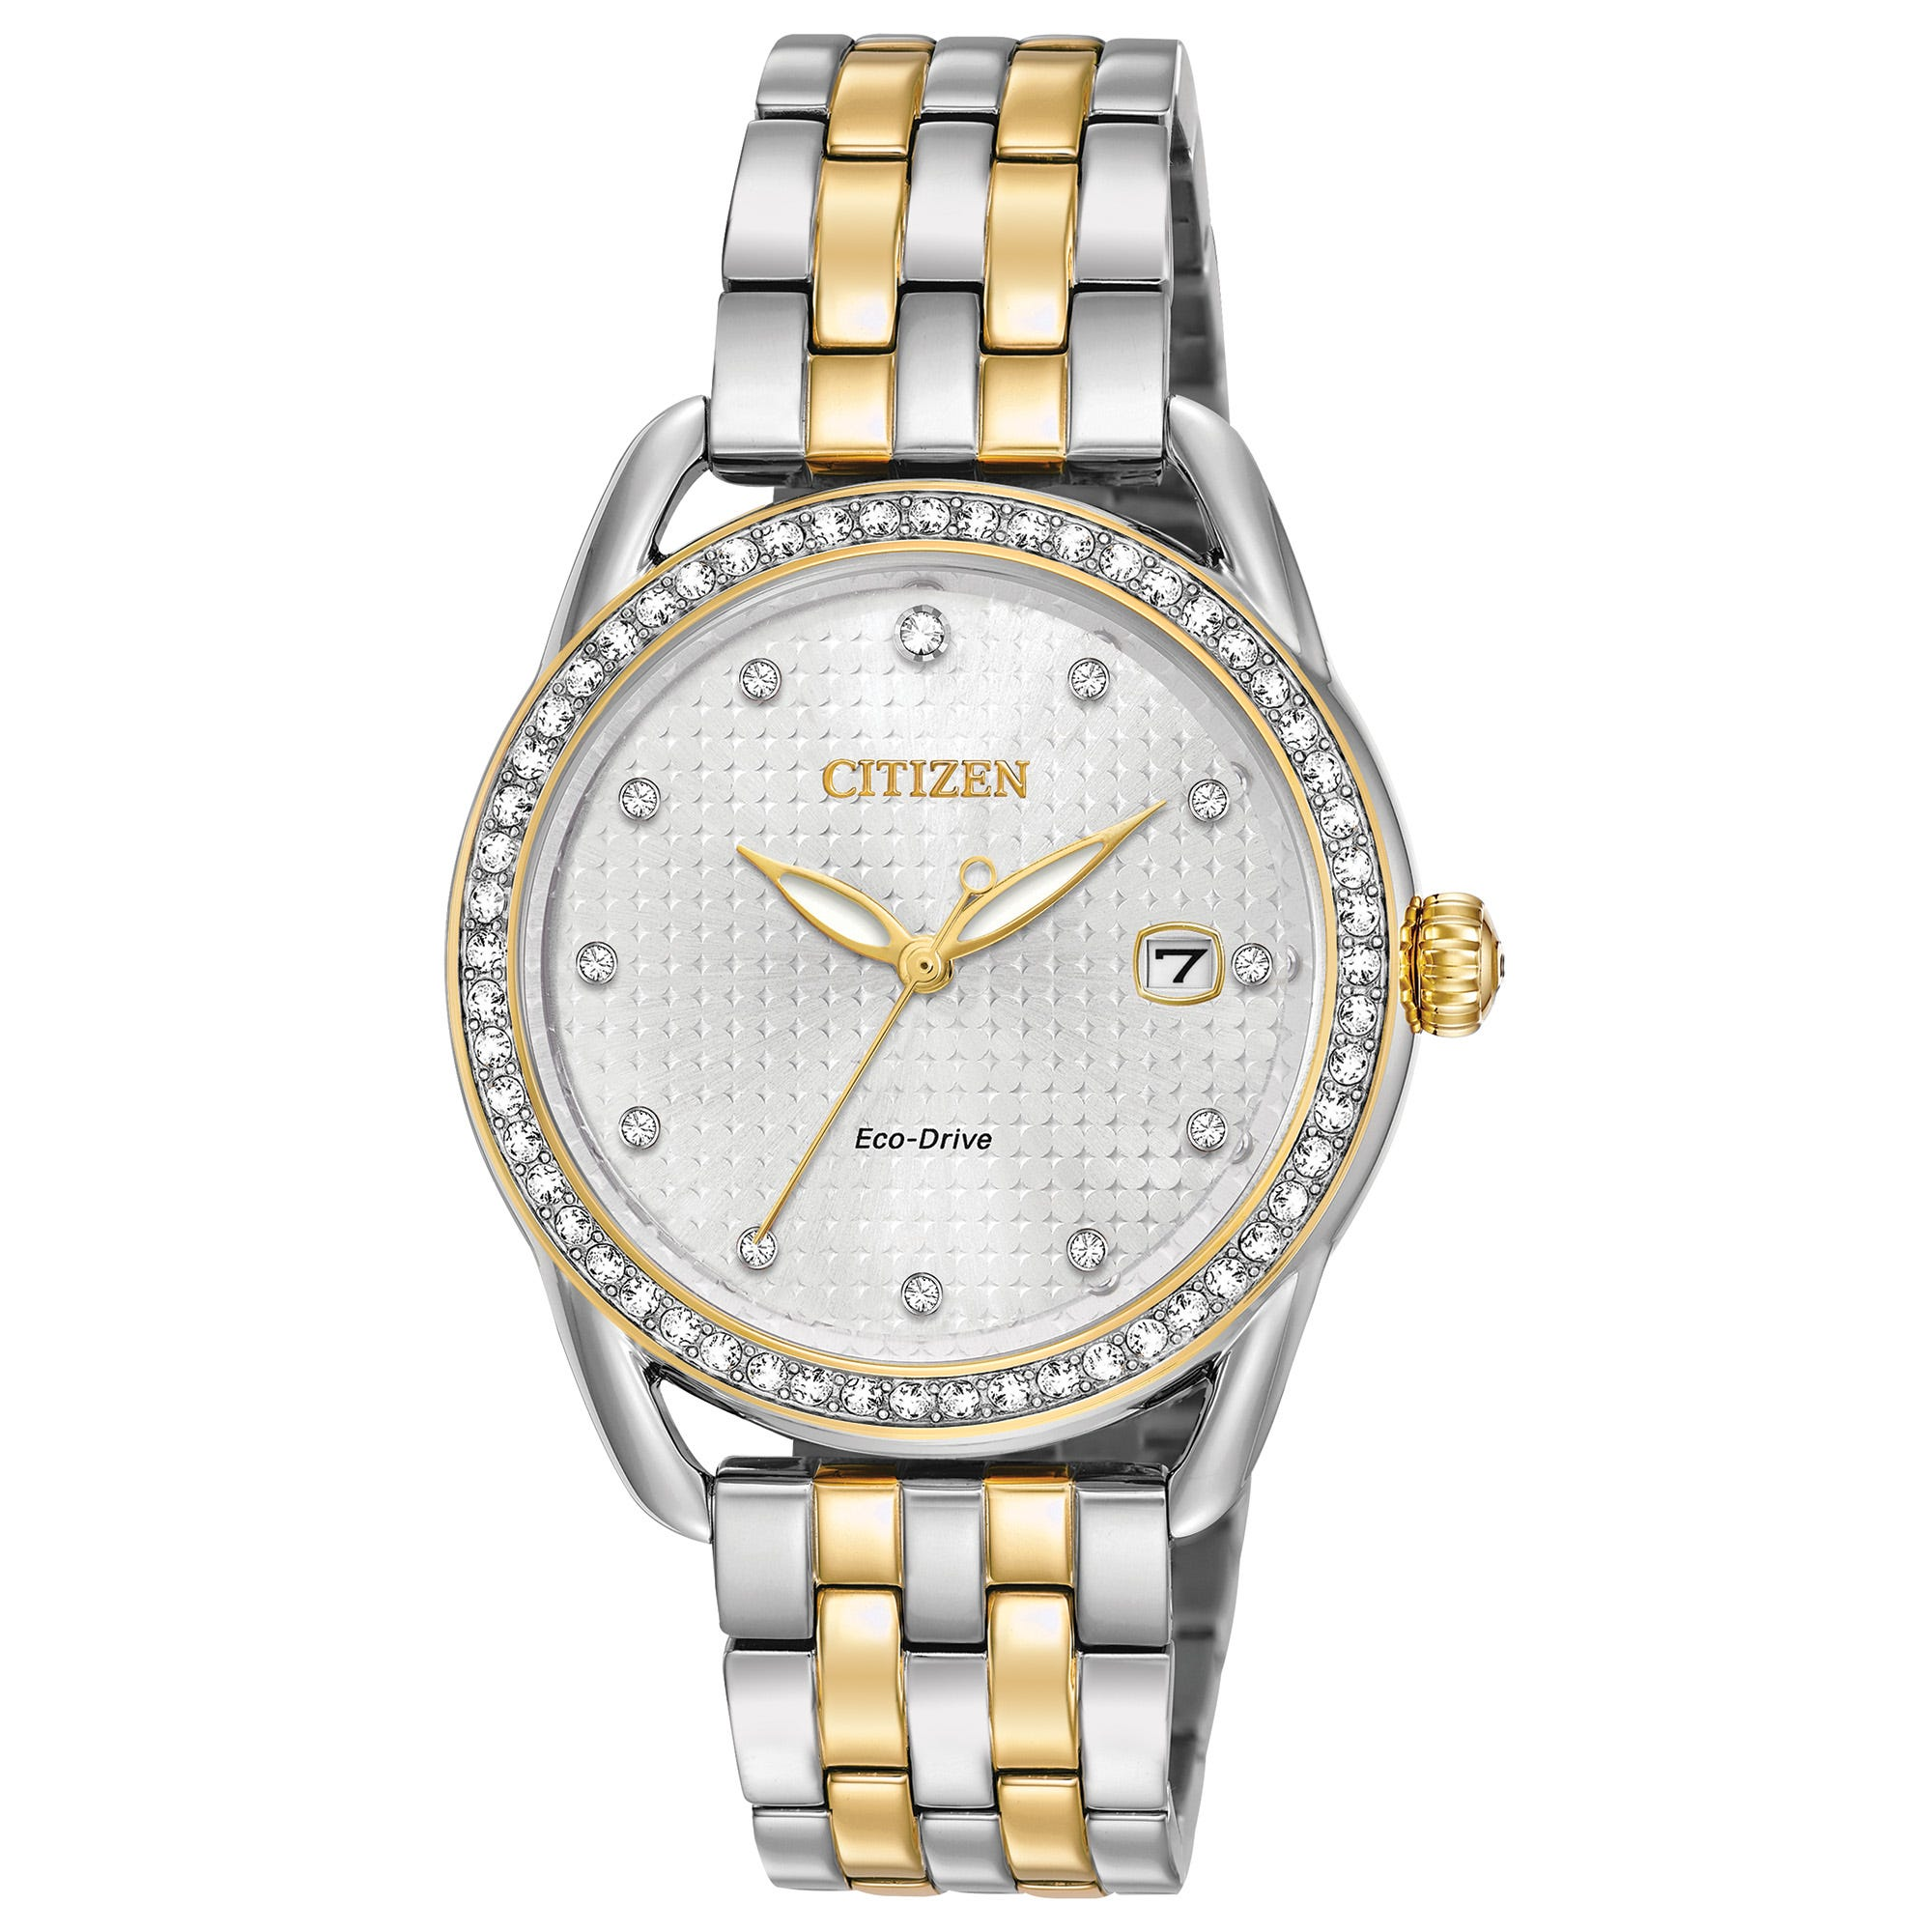 Citizen Drive LTR Women's Watch FE6114-54A